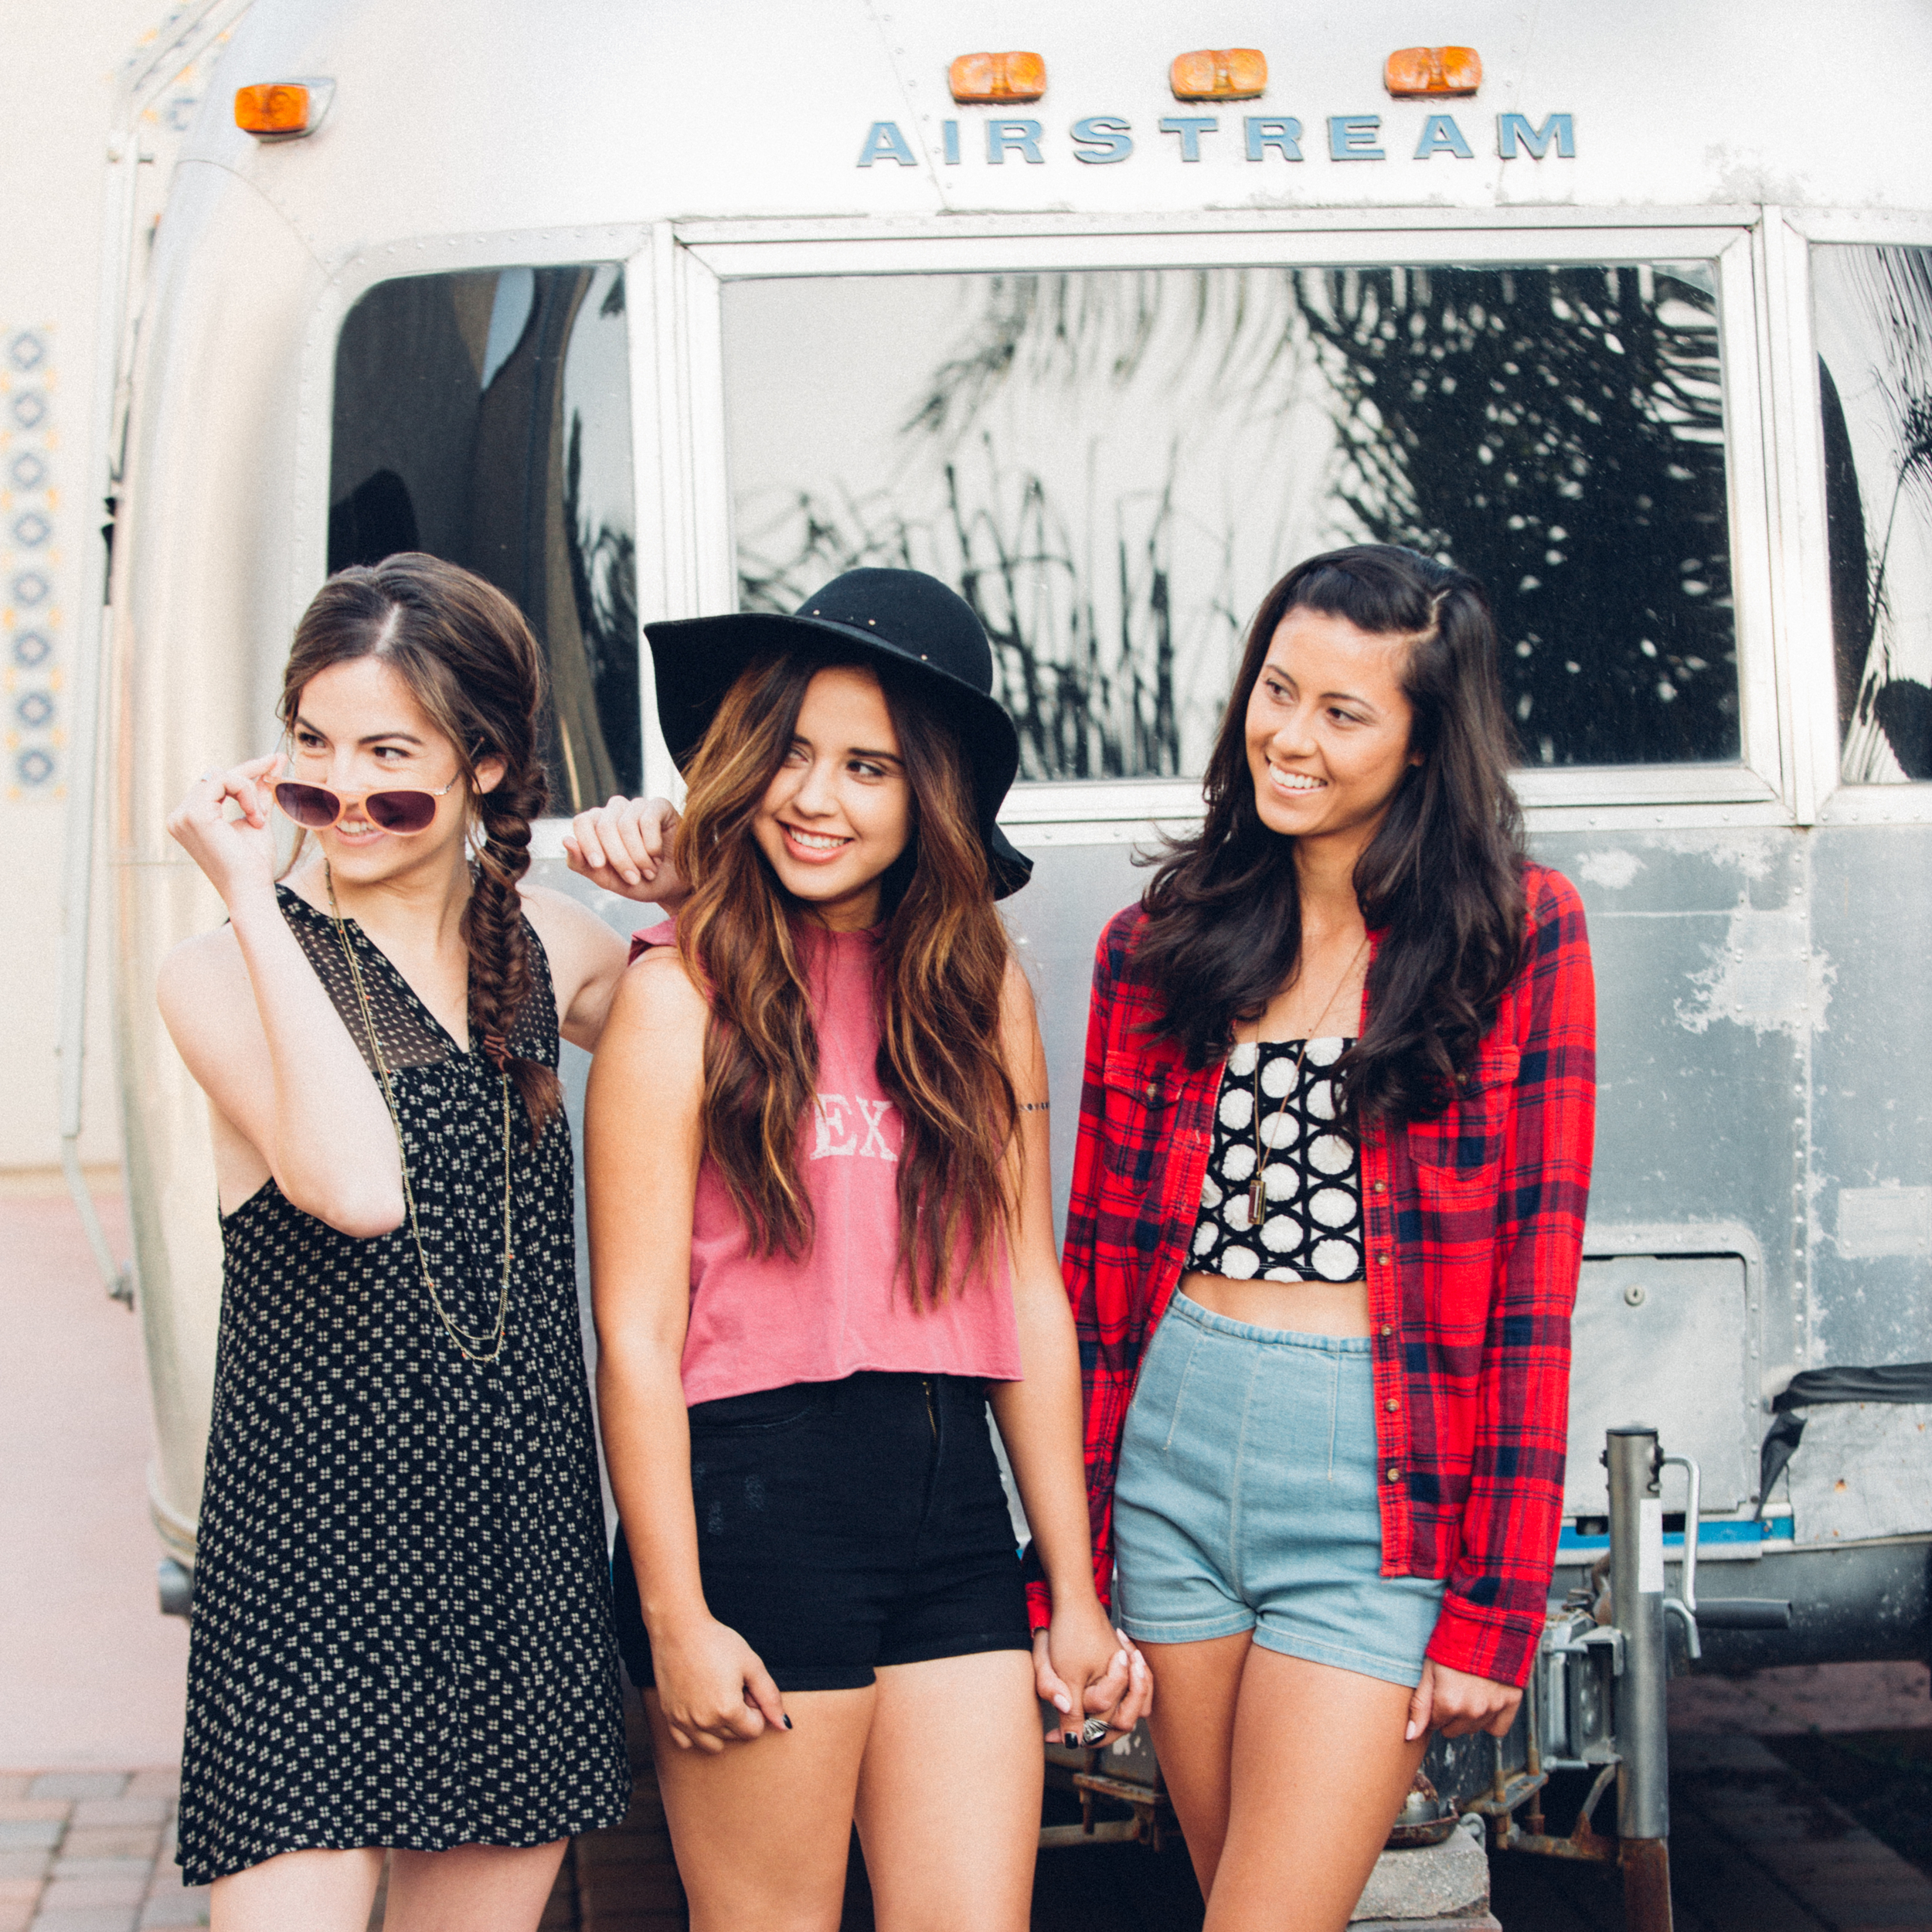 Urban Outfitters Long Beach Backyard Photoshoot by The Finches